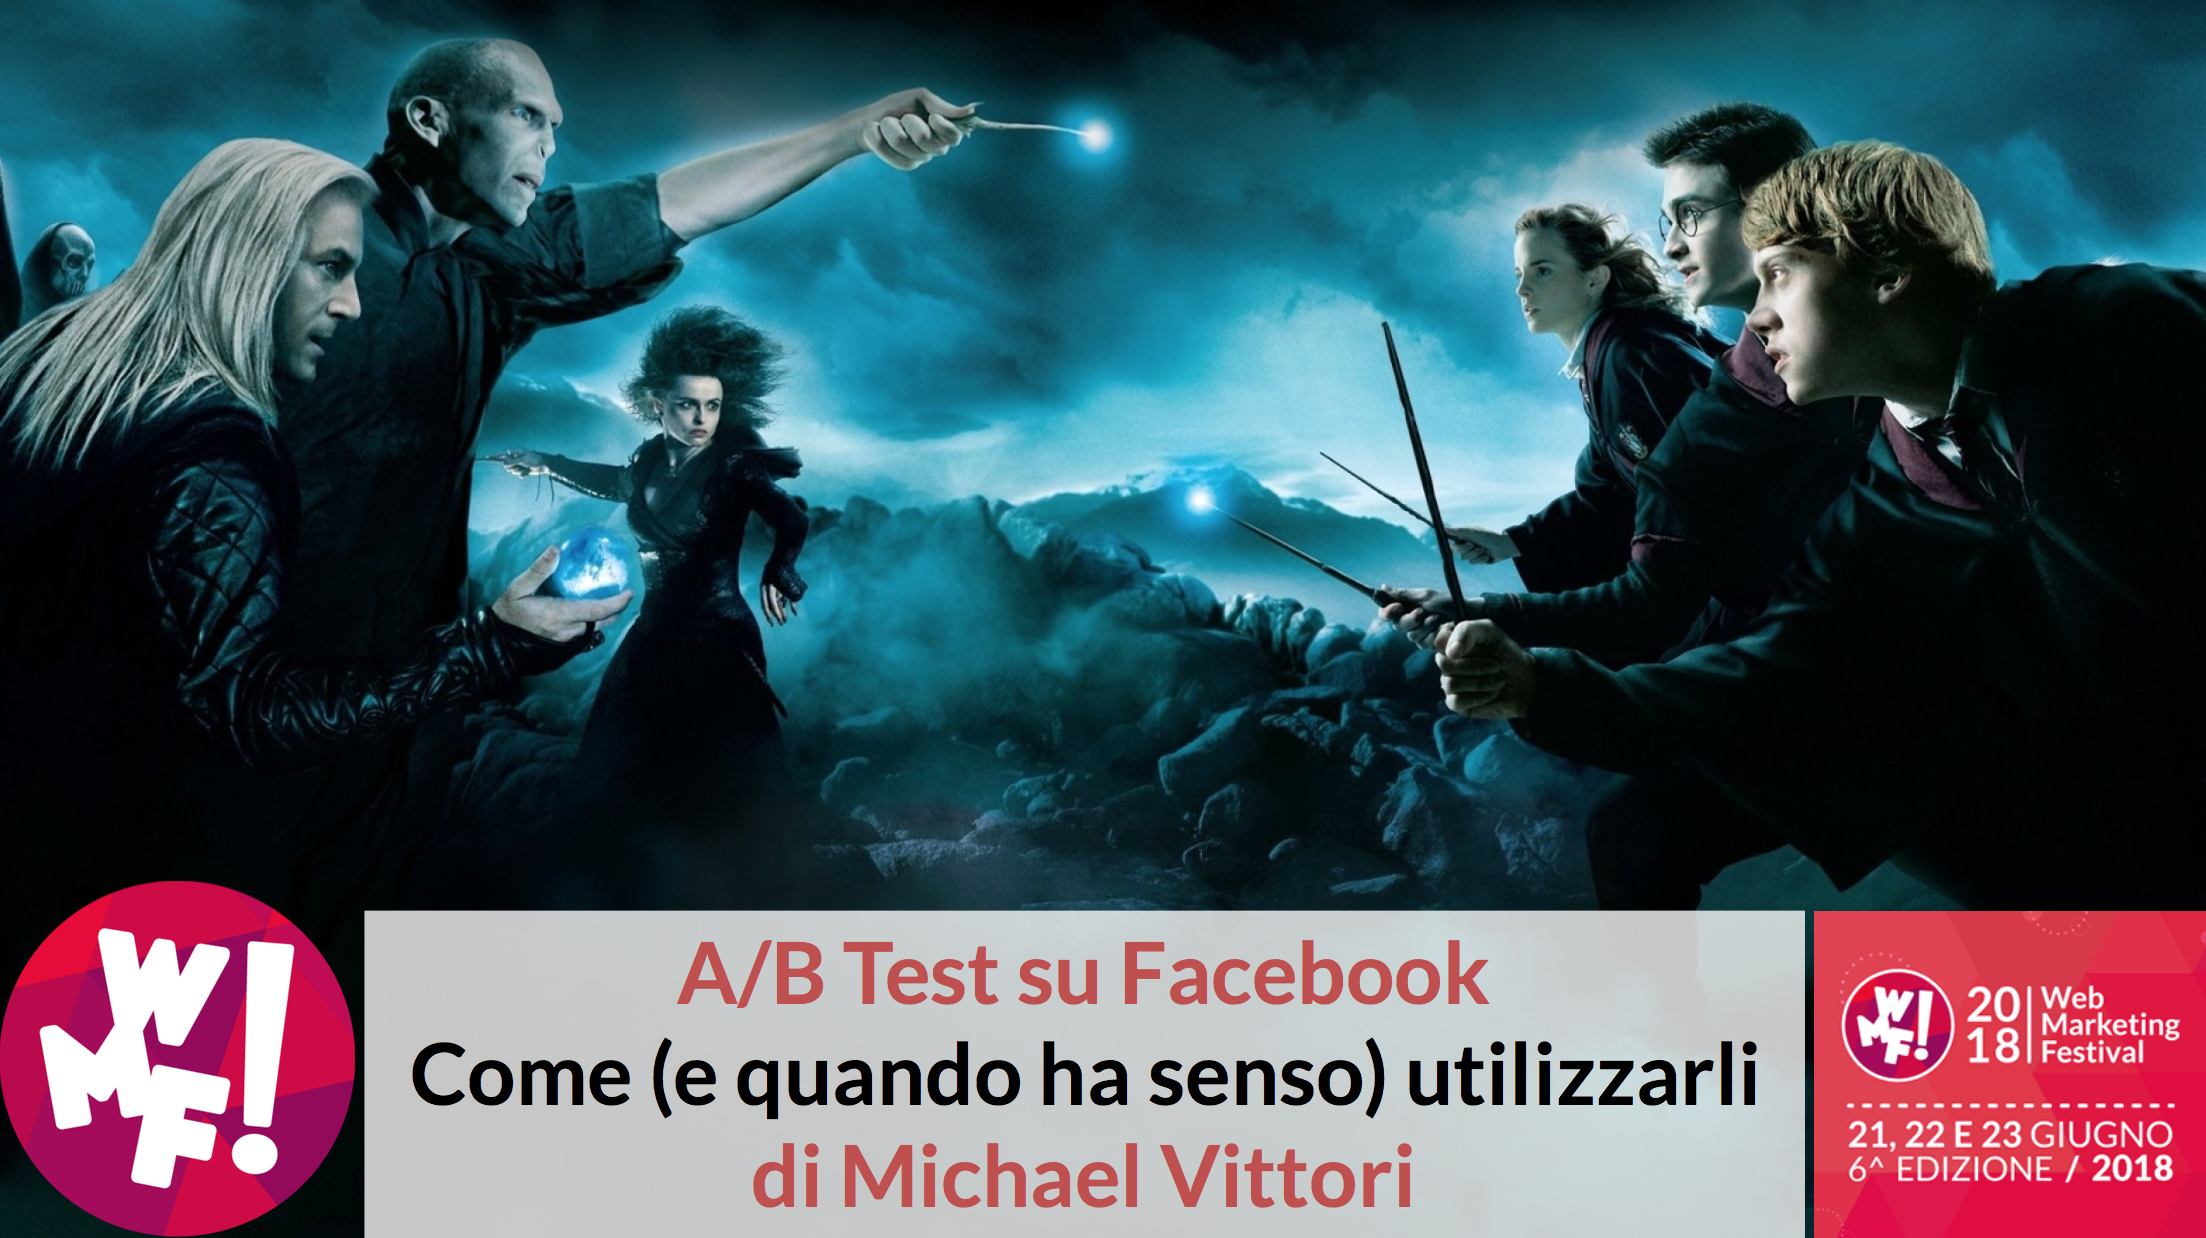 A/B Test su Facebook: come (e quando ha senso) utilizzarli @ WMF 2018